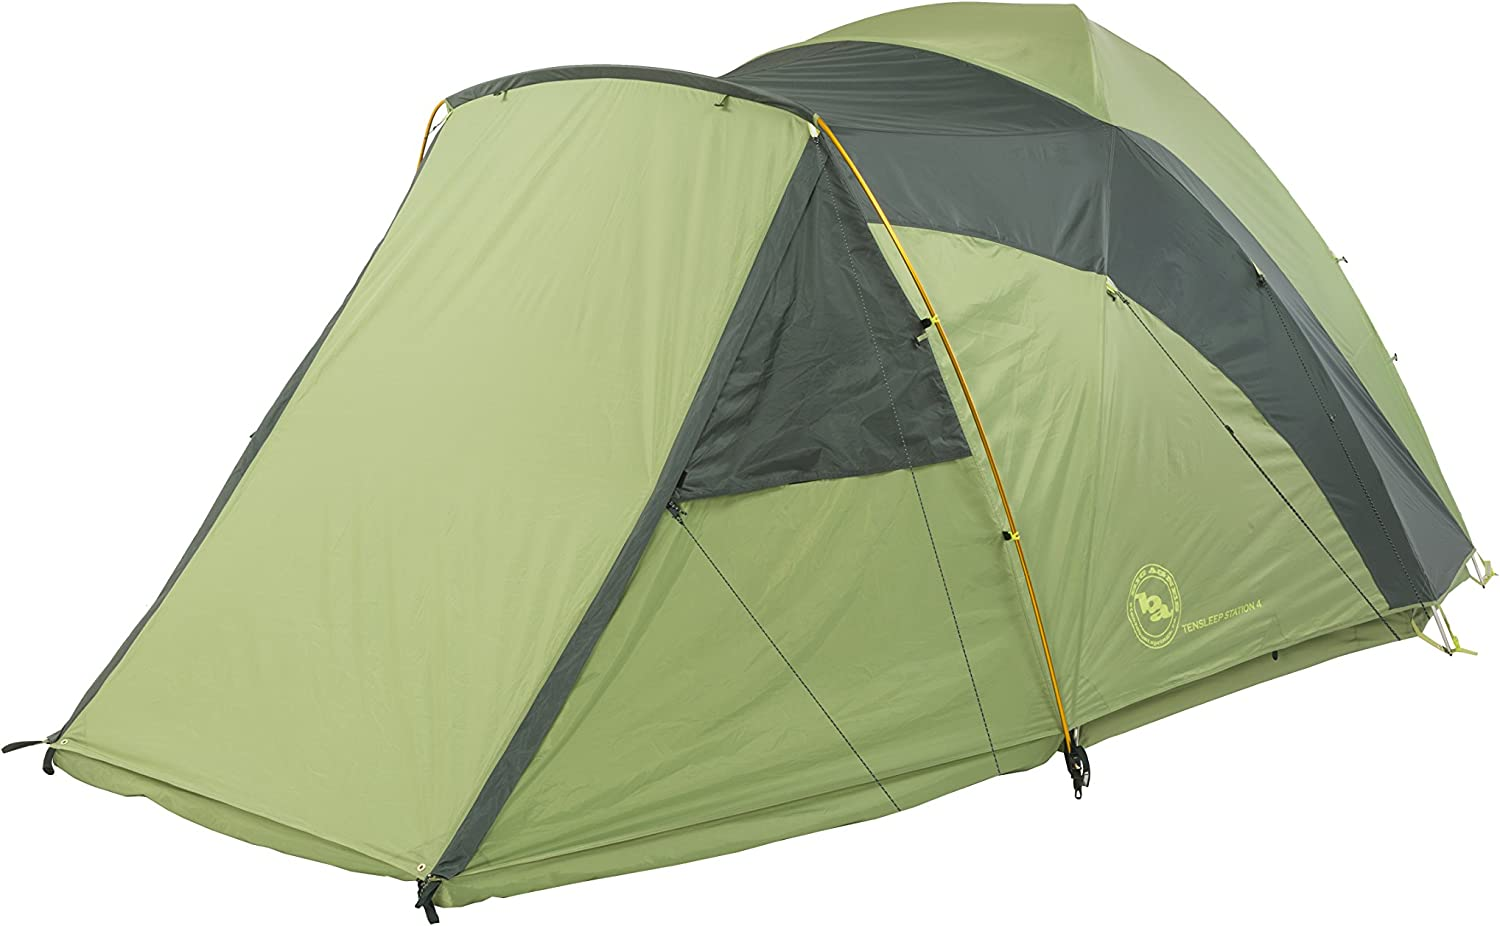 Big Agnes Tensleep Station Camping Tent